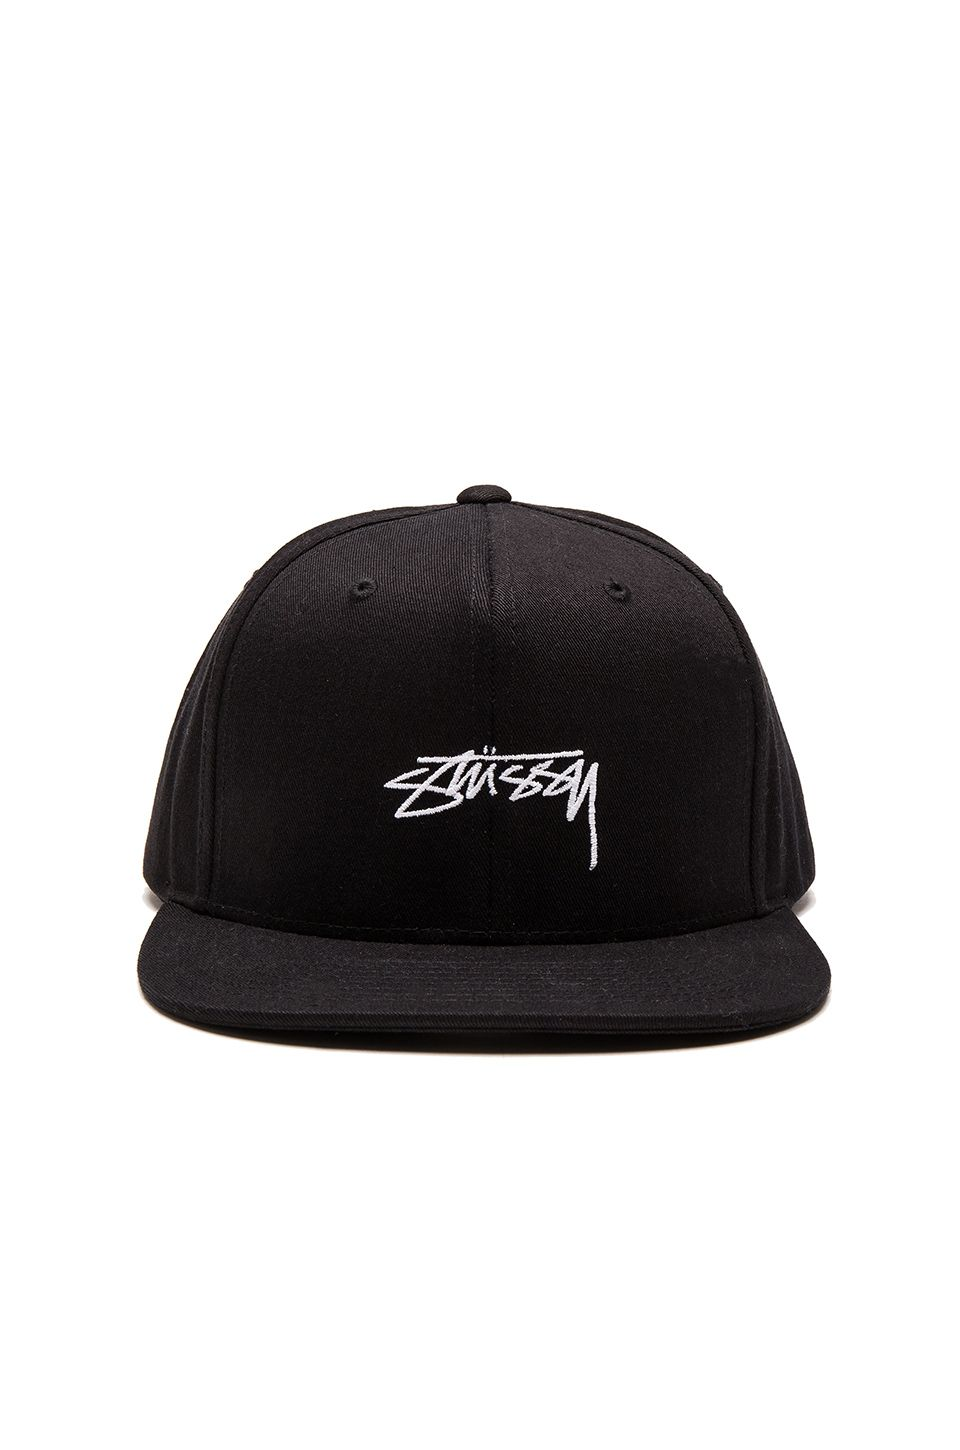 6167b49b1fb Stussy Smooth Stock Enzyme Snapback in Black